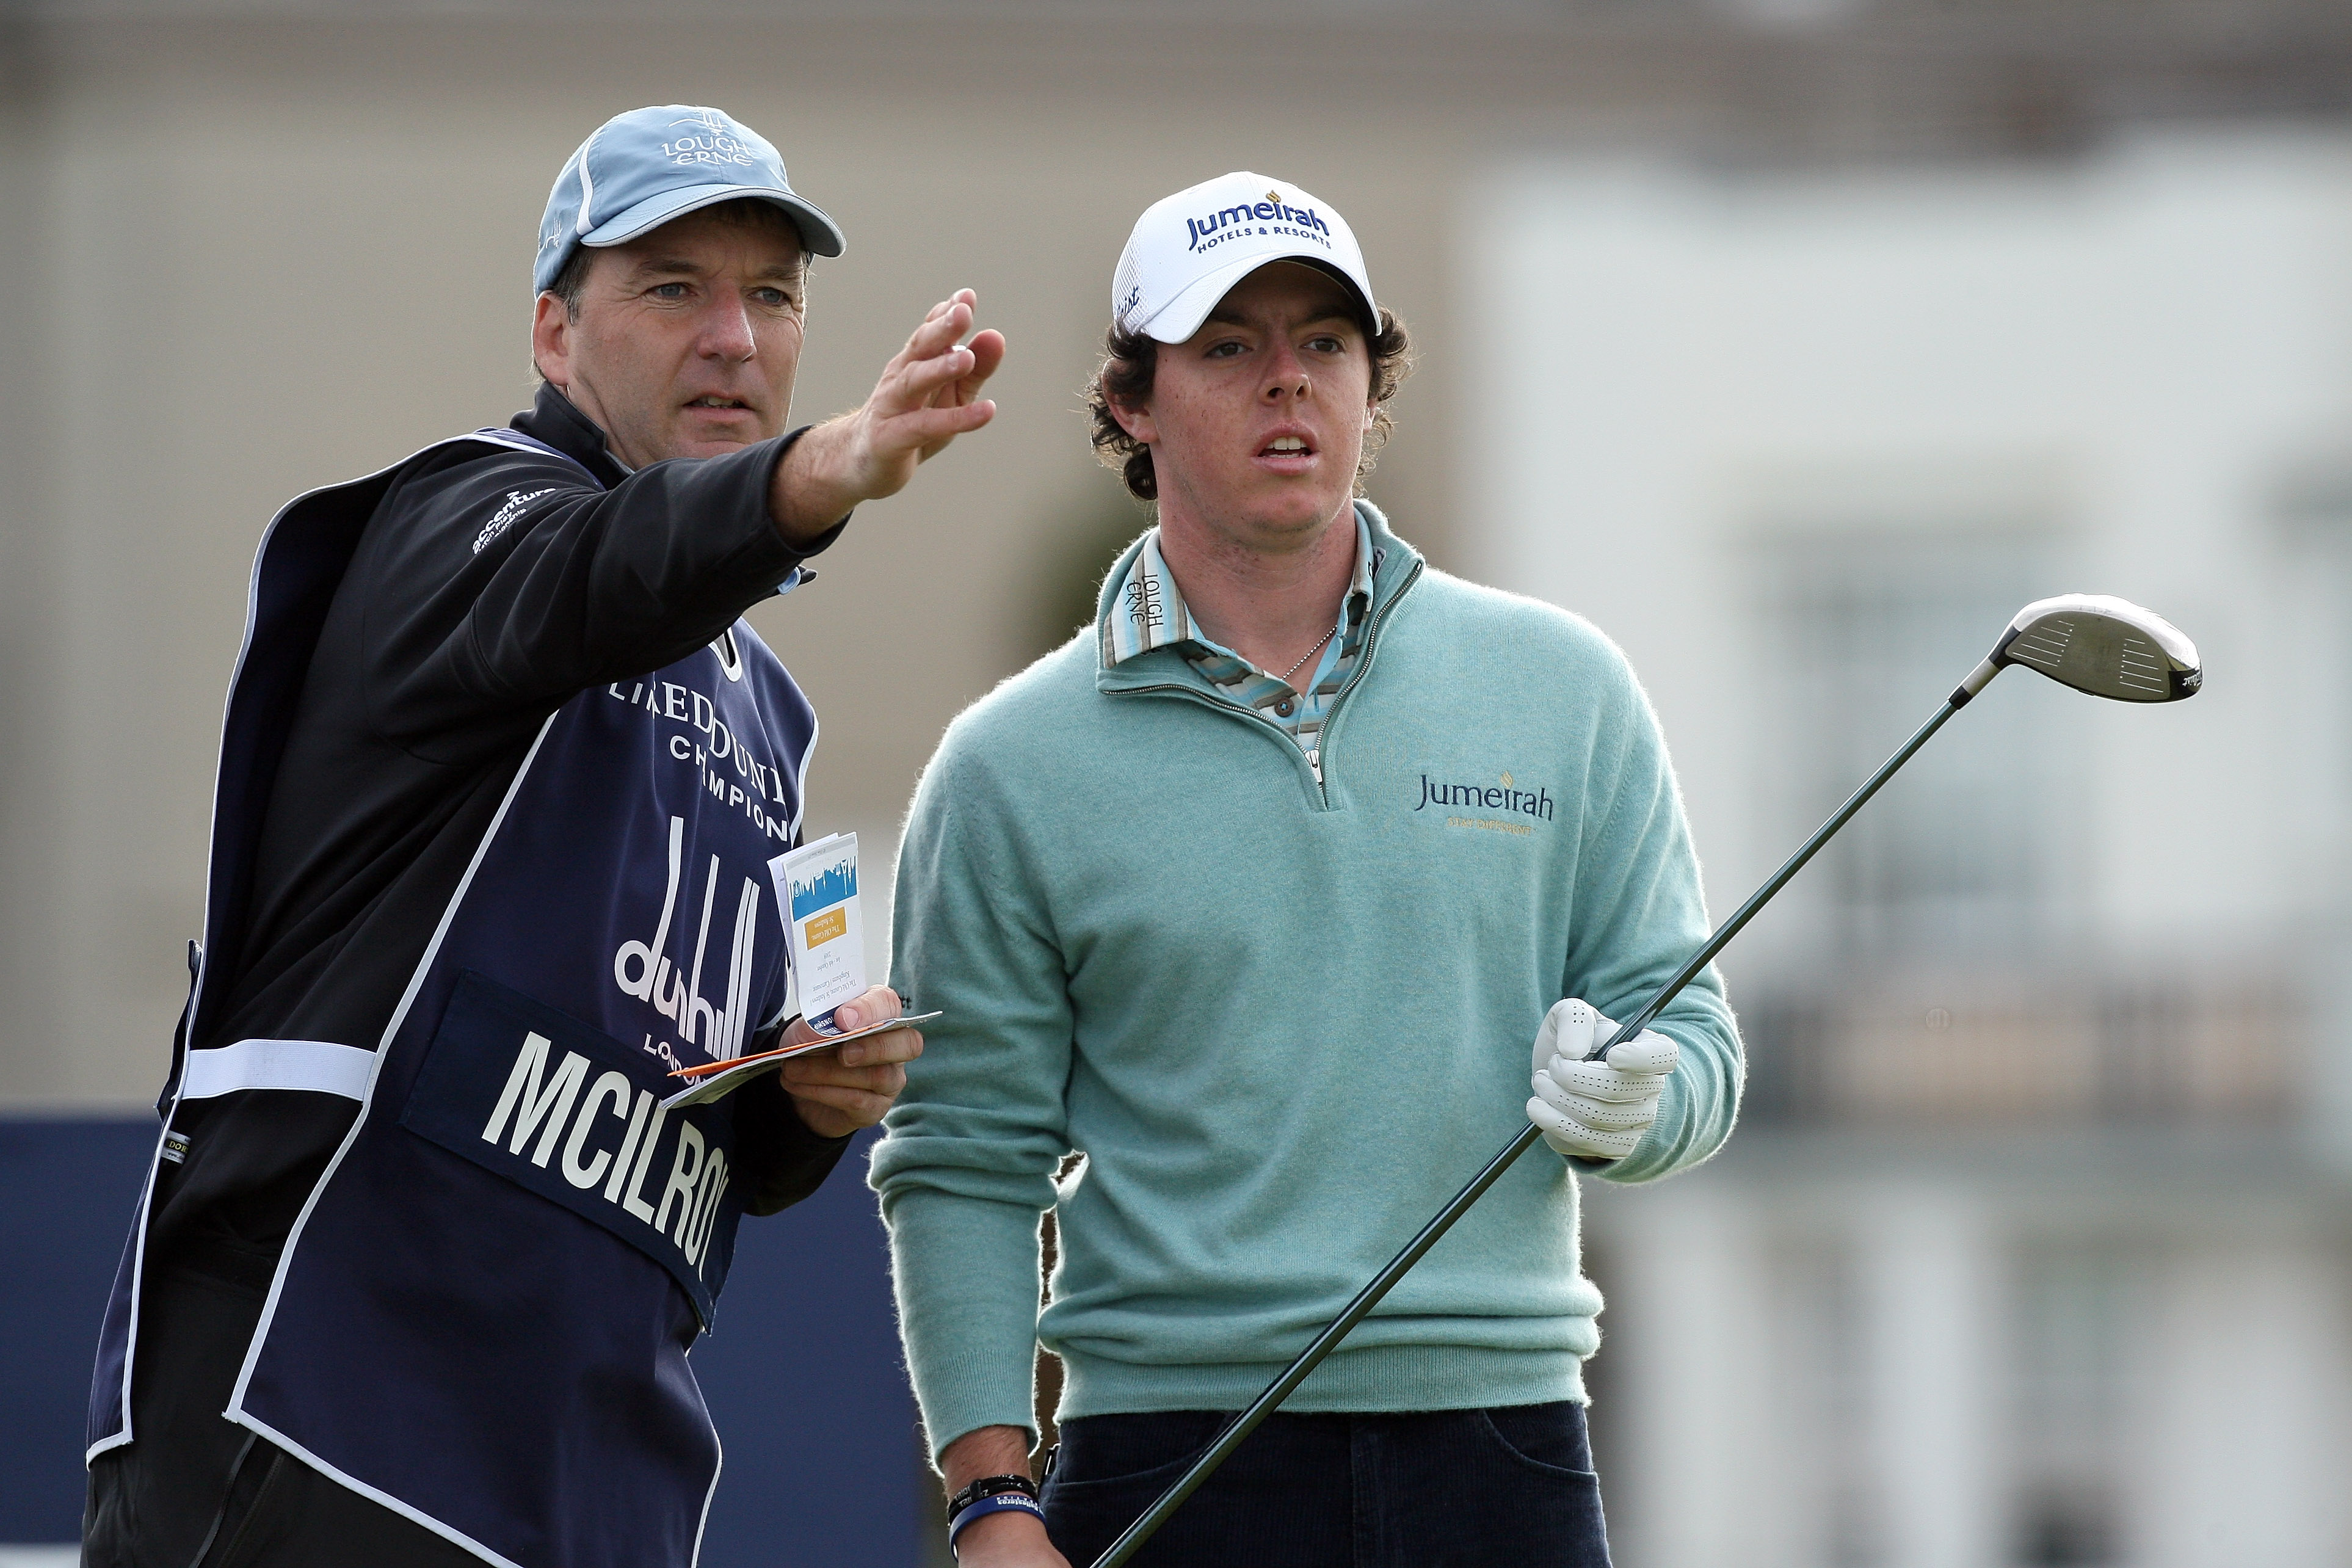 Rory McIlroy was runner-up at the 2009 Dunhill Links (Photo: Getty Images)